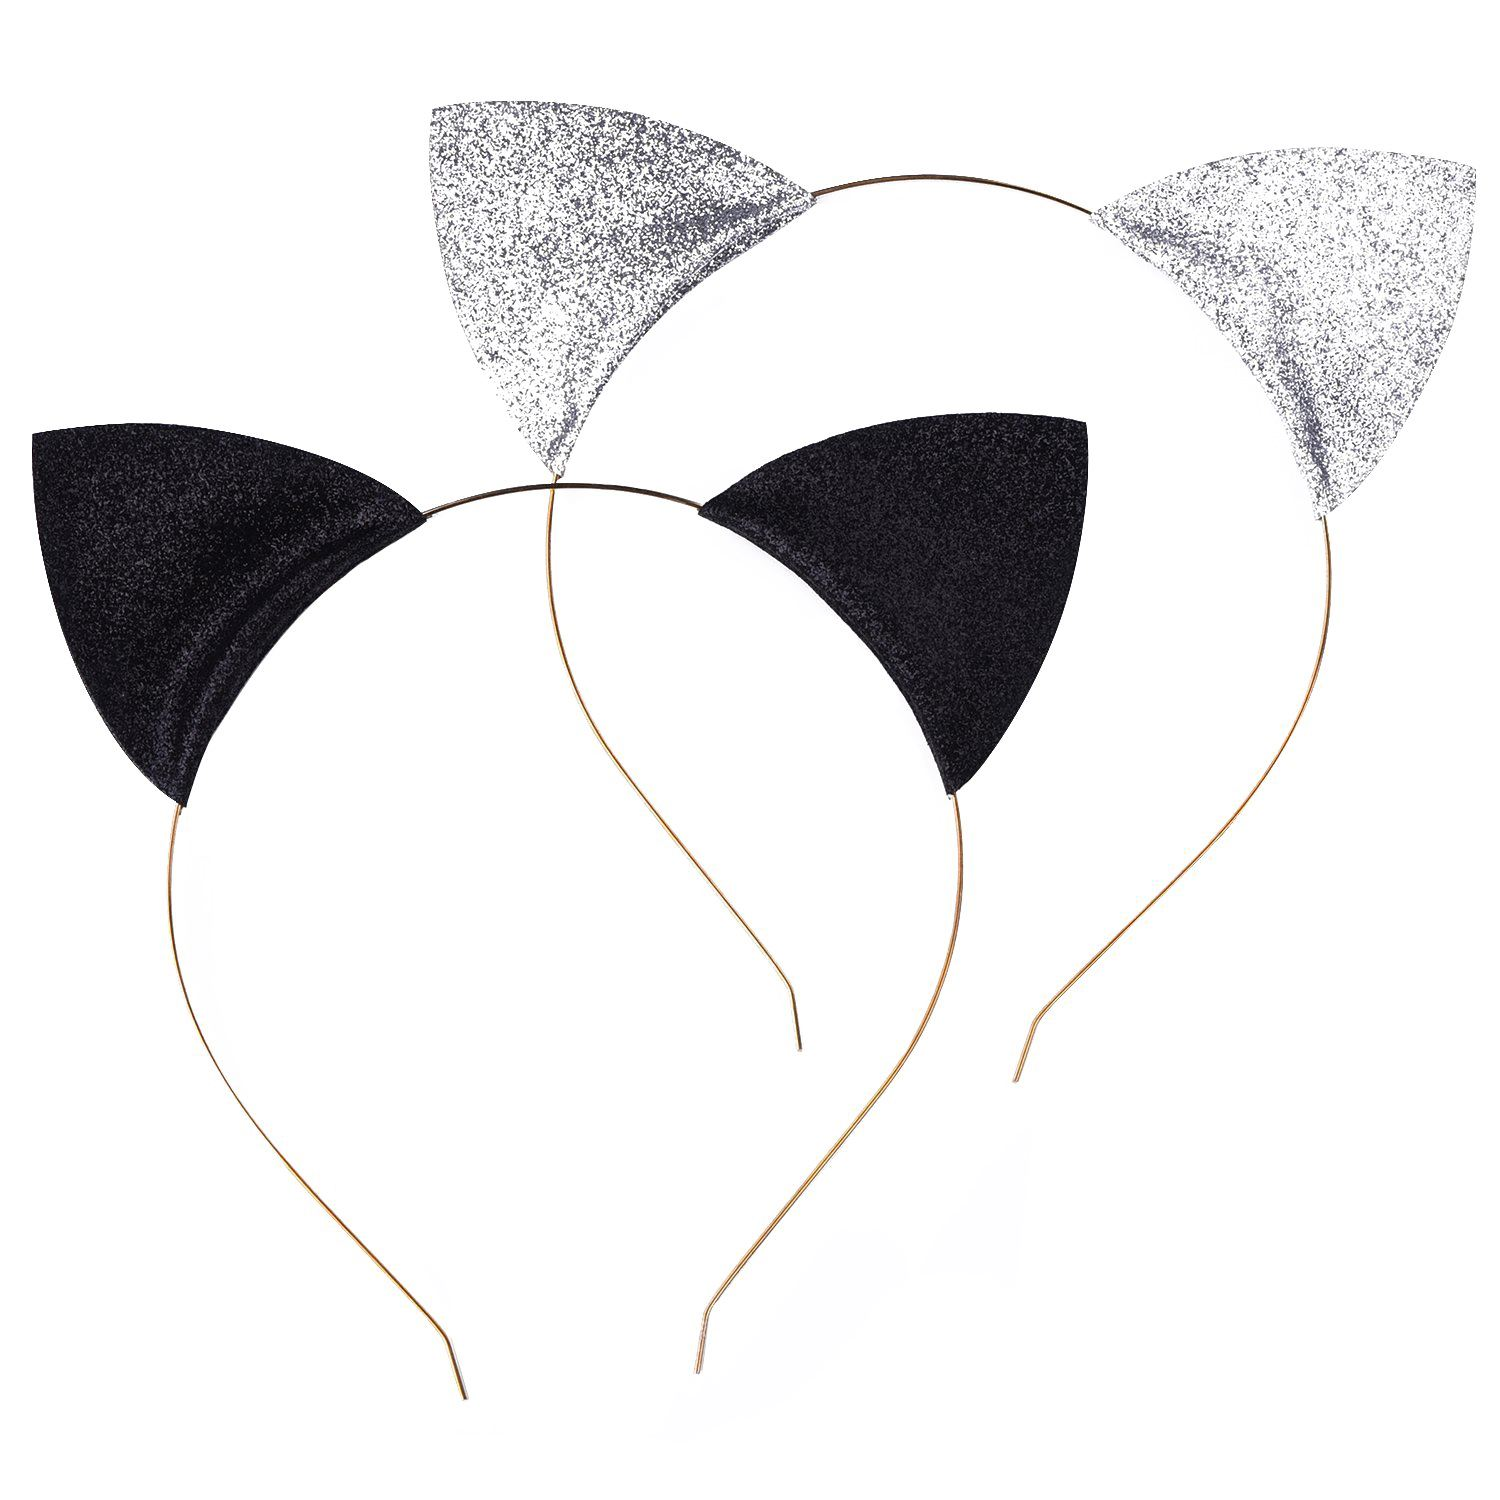 Glitter Cat Ears Headbands Cats Ear Hair Hoops Clasps for Party and Daily Wearing, Black and Silver, 2 Pieces